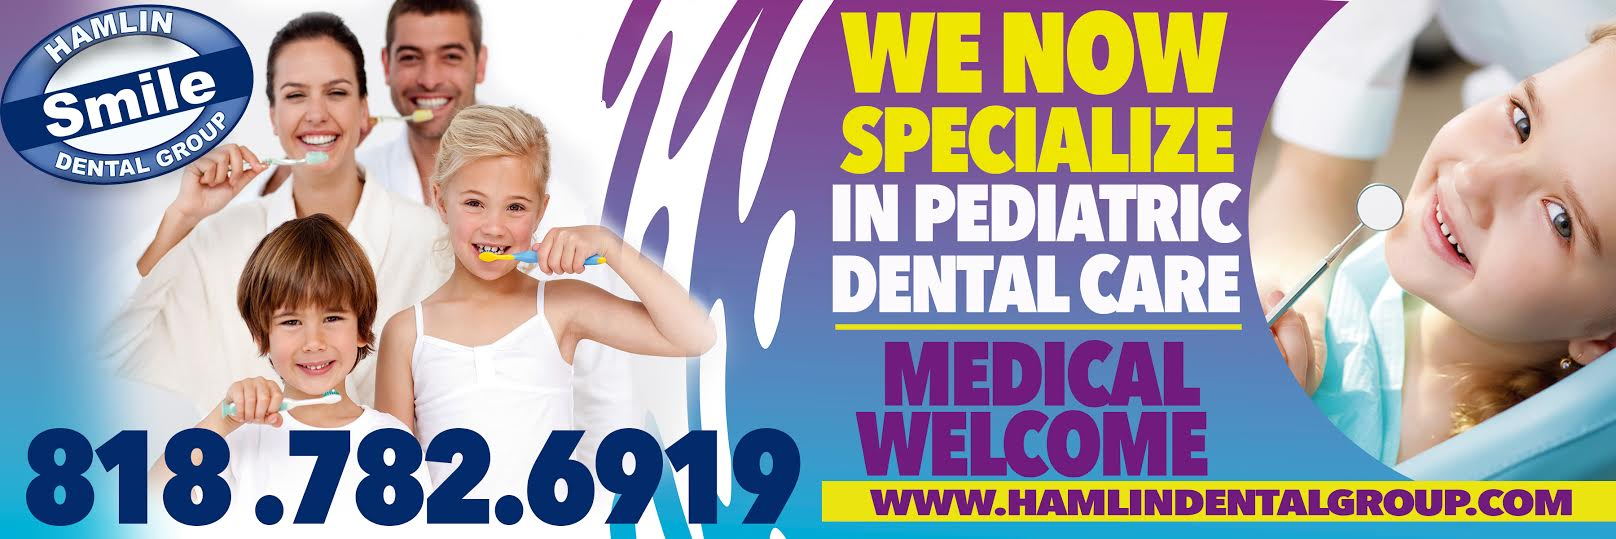 Pediatric Special Banner